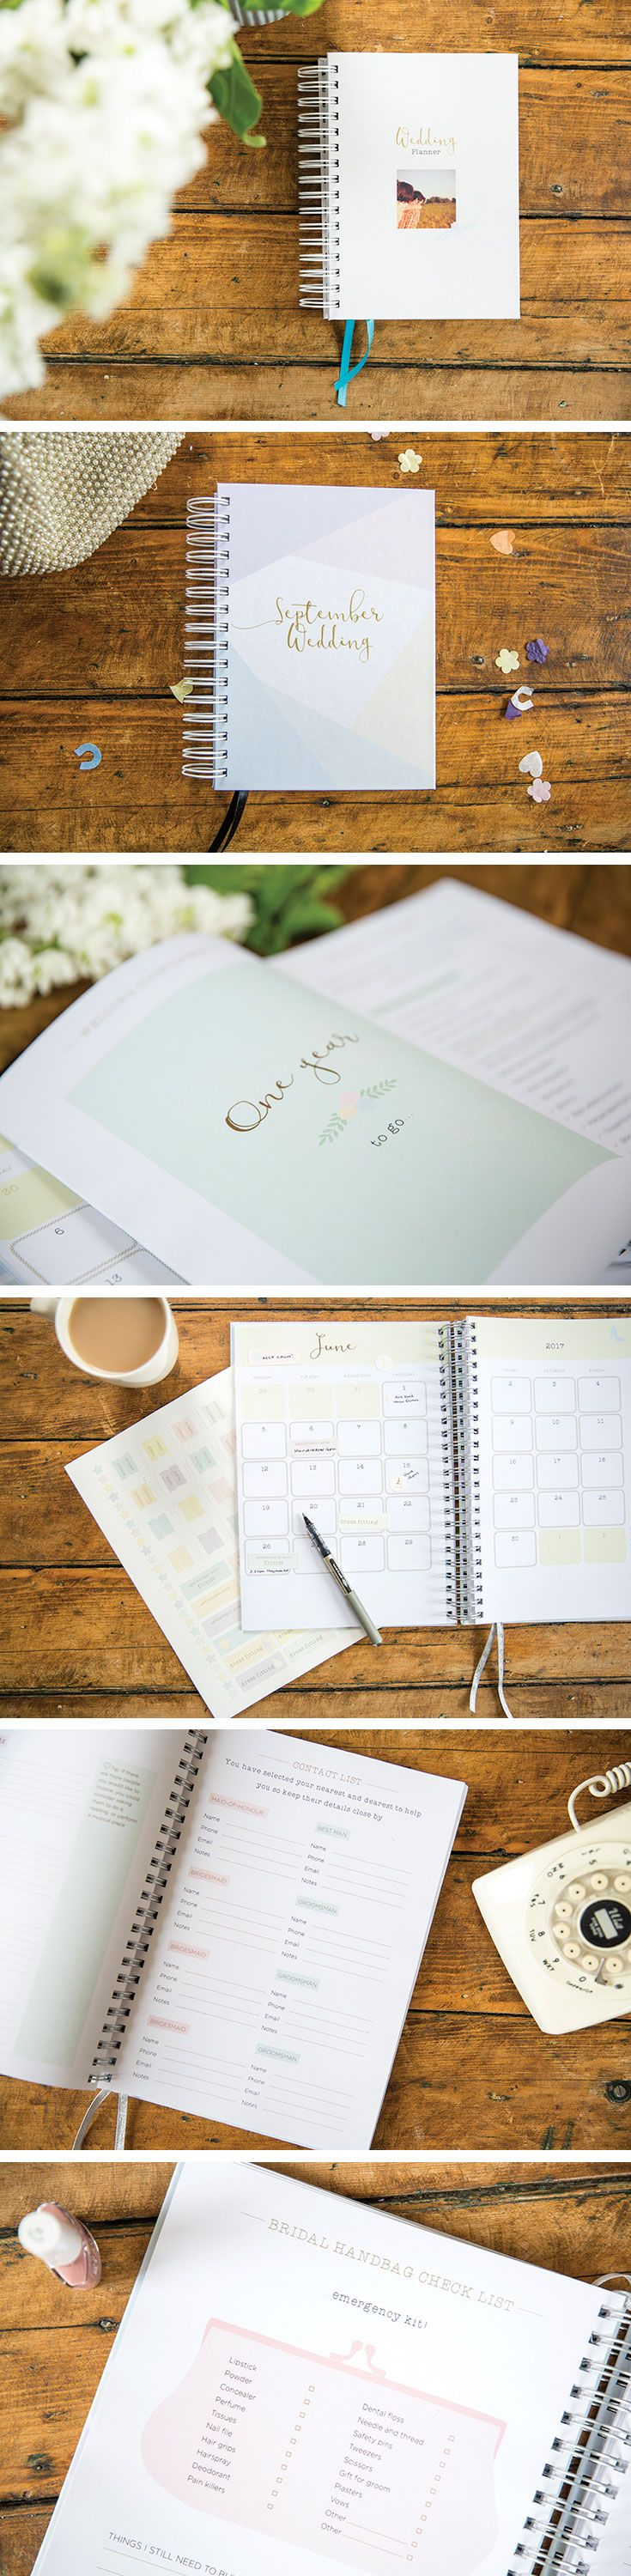 Do you hear wedding bells? | There's a planner for that.  Design your own wedding planner, monthly pages counting down to your specific wedding month. Personalise with photos and pages that are relevant to your unique wedding. #weddingplanner